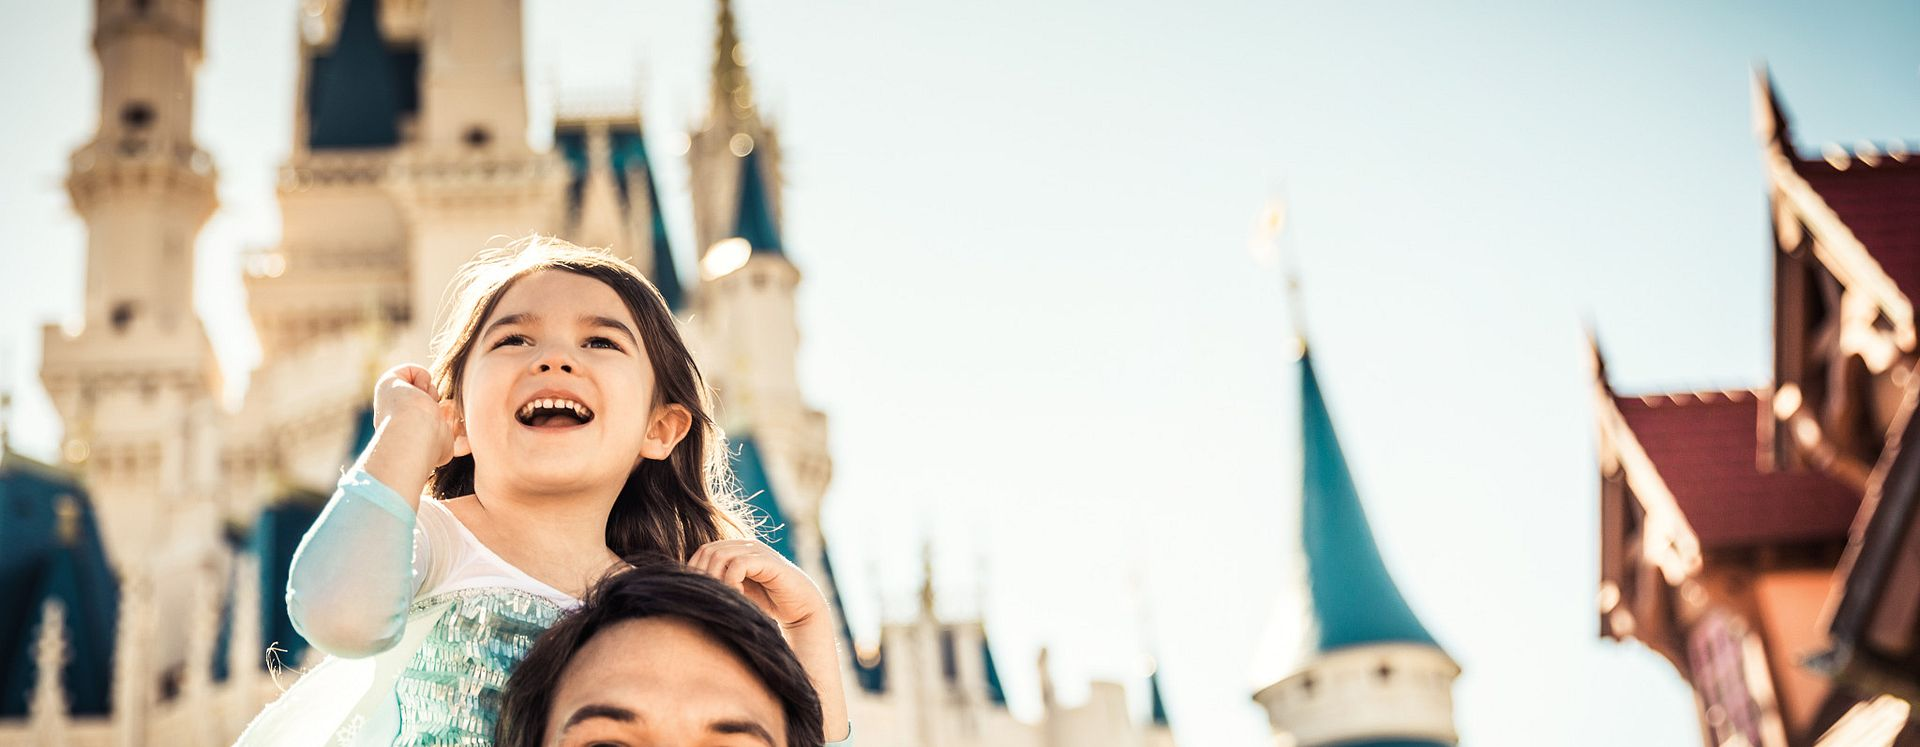 theme park walt disney world castle princess father daughter girl